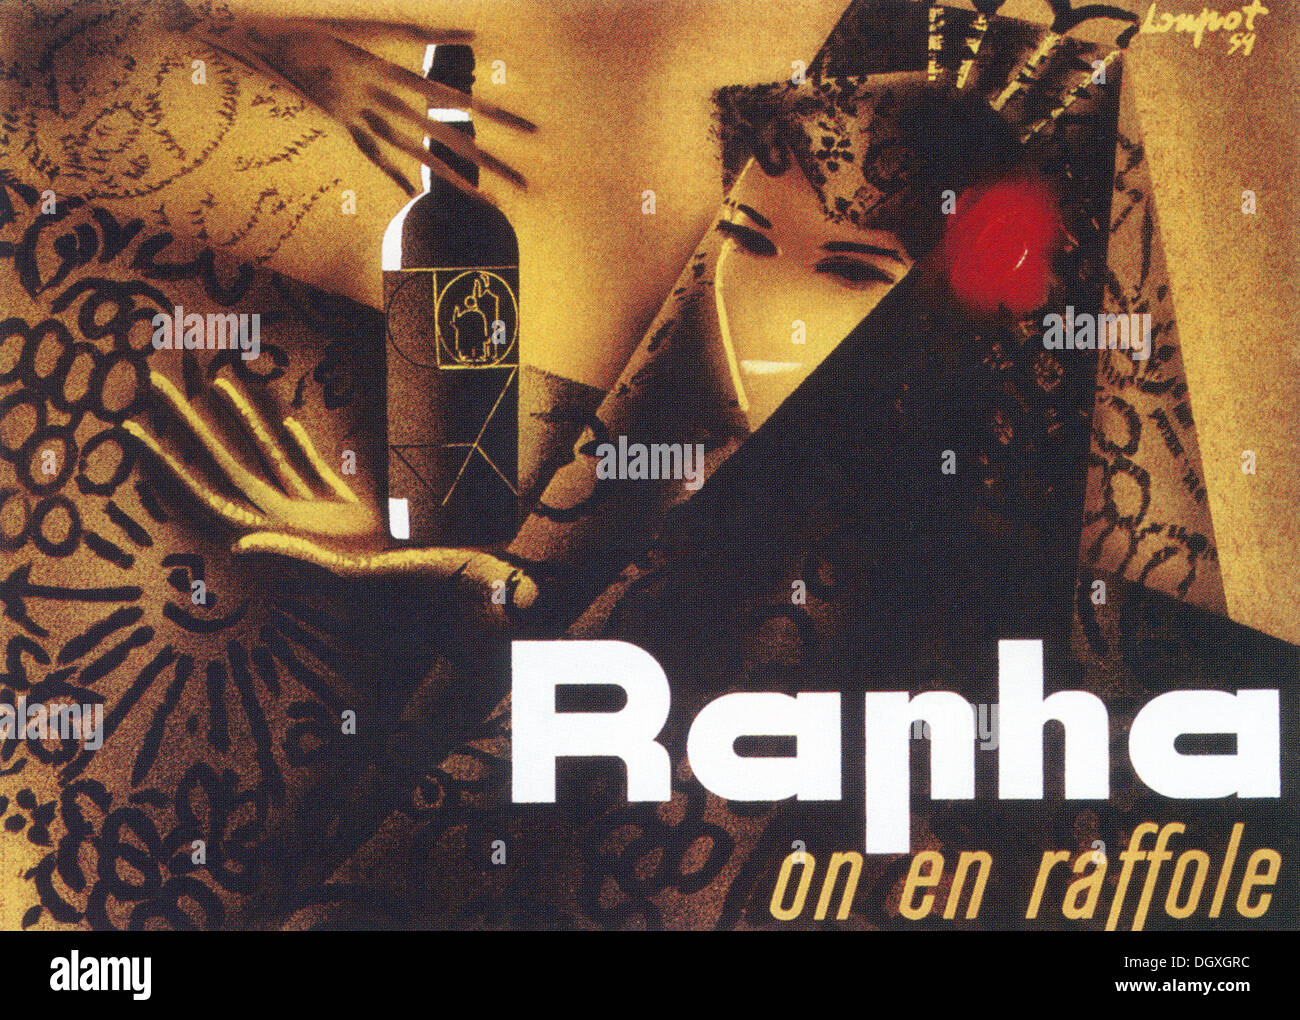 Rapha - by Charles Loupot, vintage poster - Editorial use only. - Stock Image